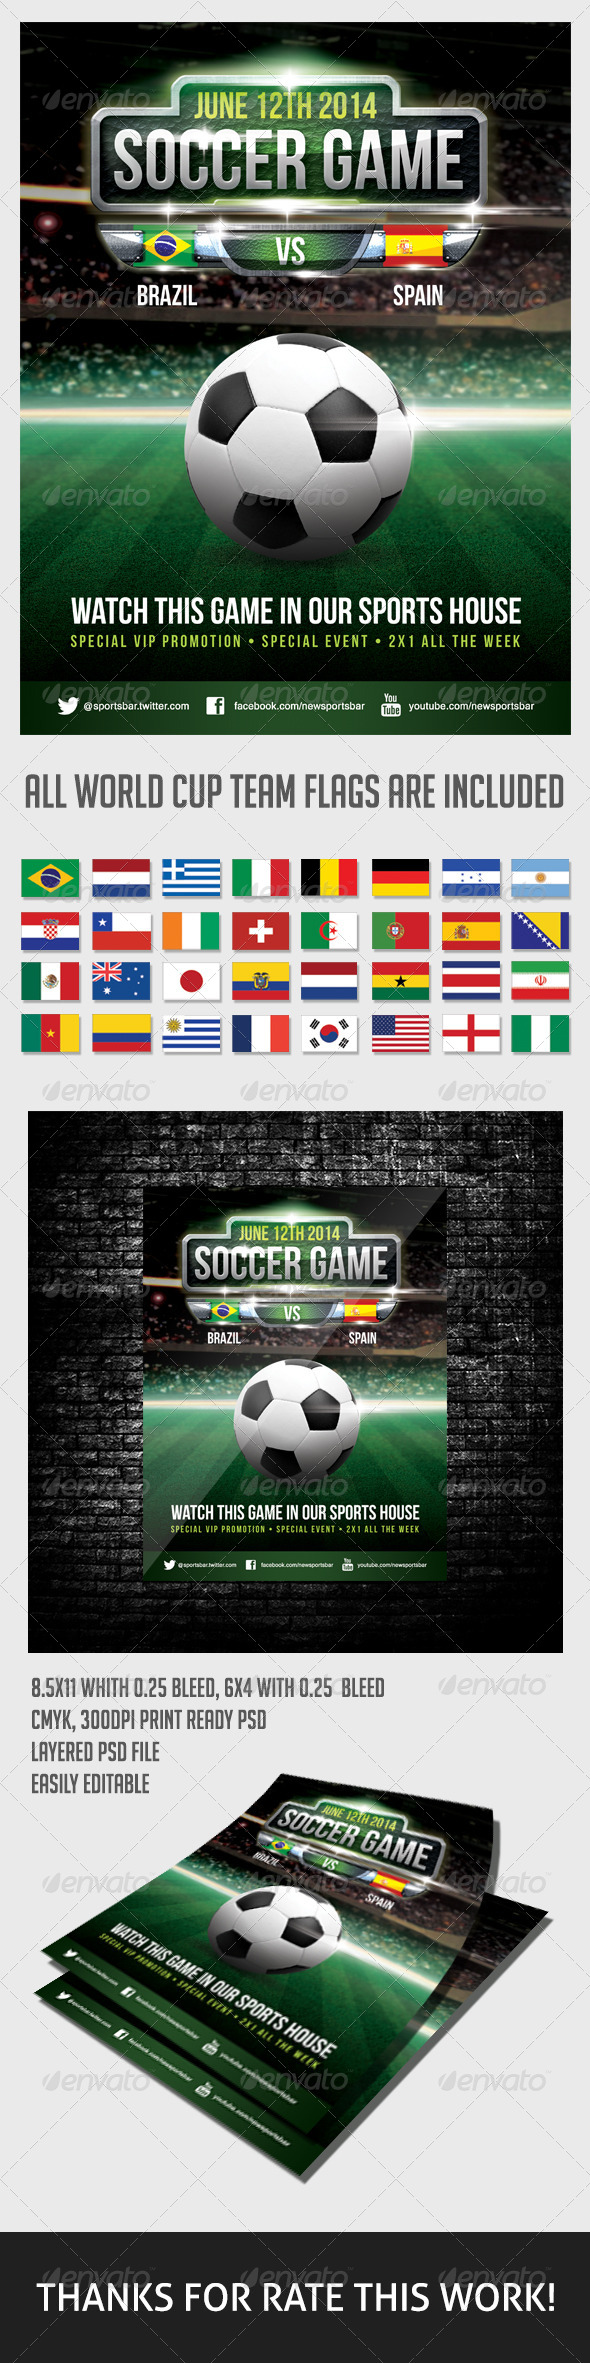 Soccer Game Poster - Sports Events